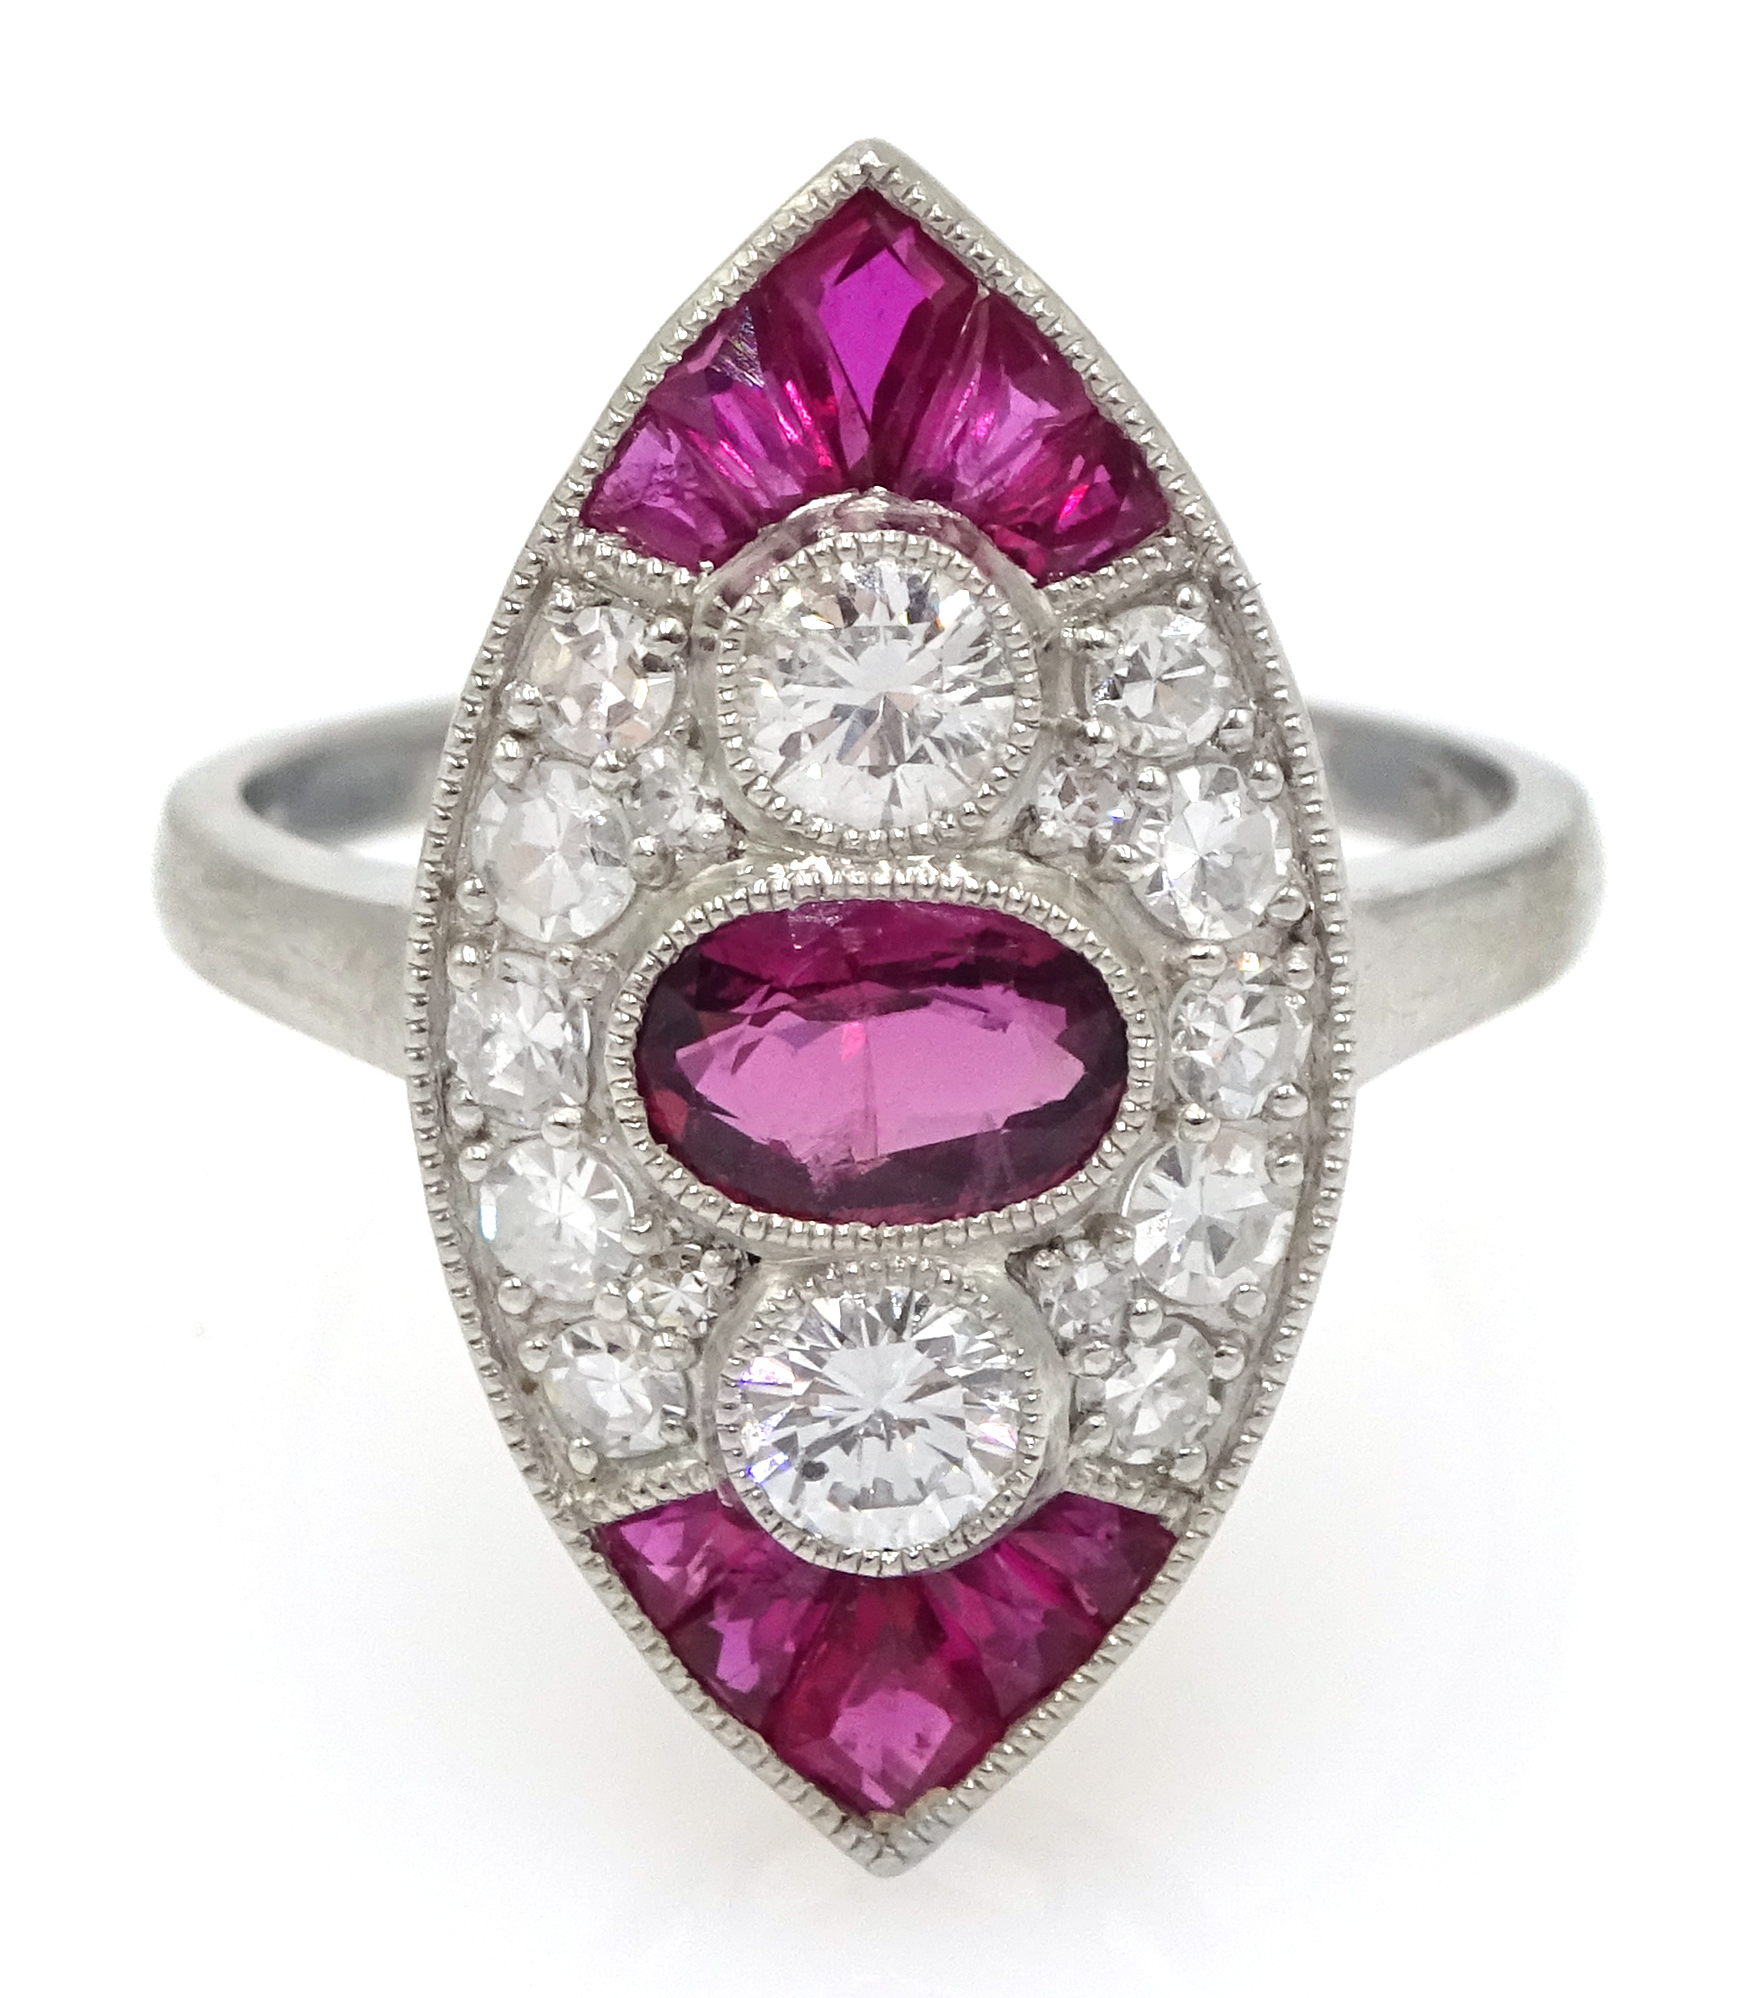 Victorian style marquise shaped platinum ring set with rubies and diamonds, free UK mainland